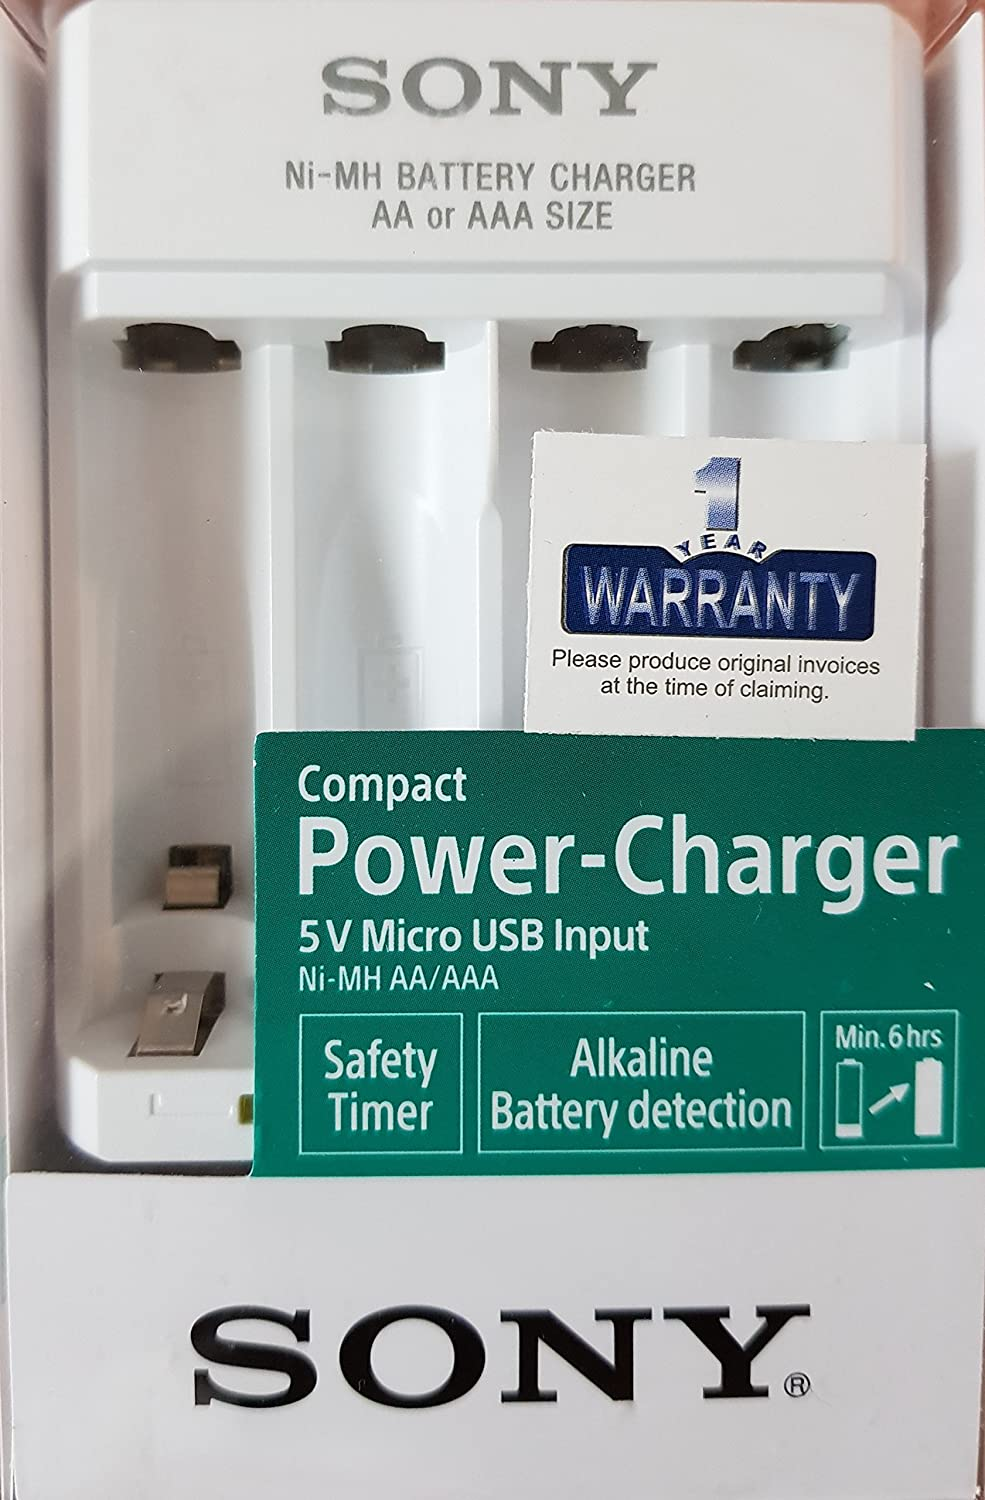 Sony Ni-MH Battery Charger: Amazon.in: Electronics on aa battery car charger adapter, aa battery charger best, 12 bay aa battery charger, aa and aaa batteries, aa battery charger product, aa and aaa battery, aa lithium battery charger 32v, aa solar battery charger, aa rechargeable battery charger, aa nimh battery charger, sony aa battery charger,